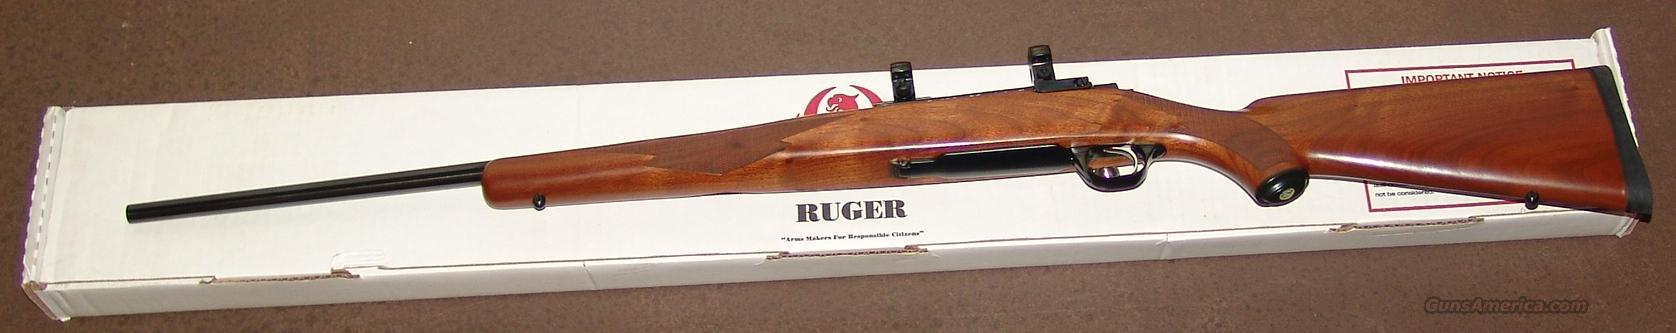 RUGER M77 243  Guns > Rifles > Ruger Rifles > Model 77